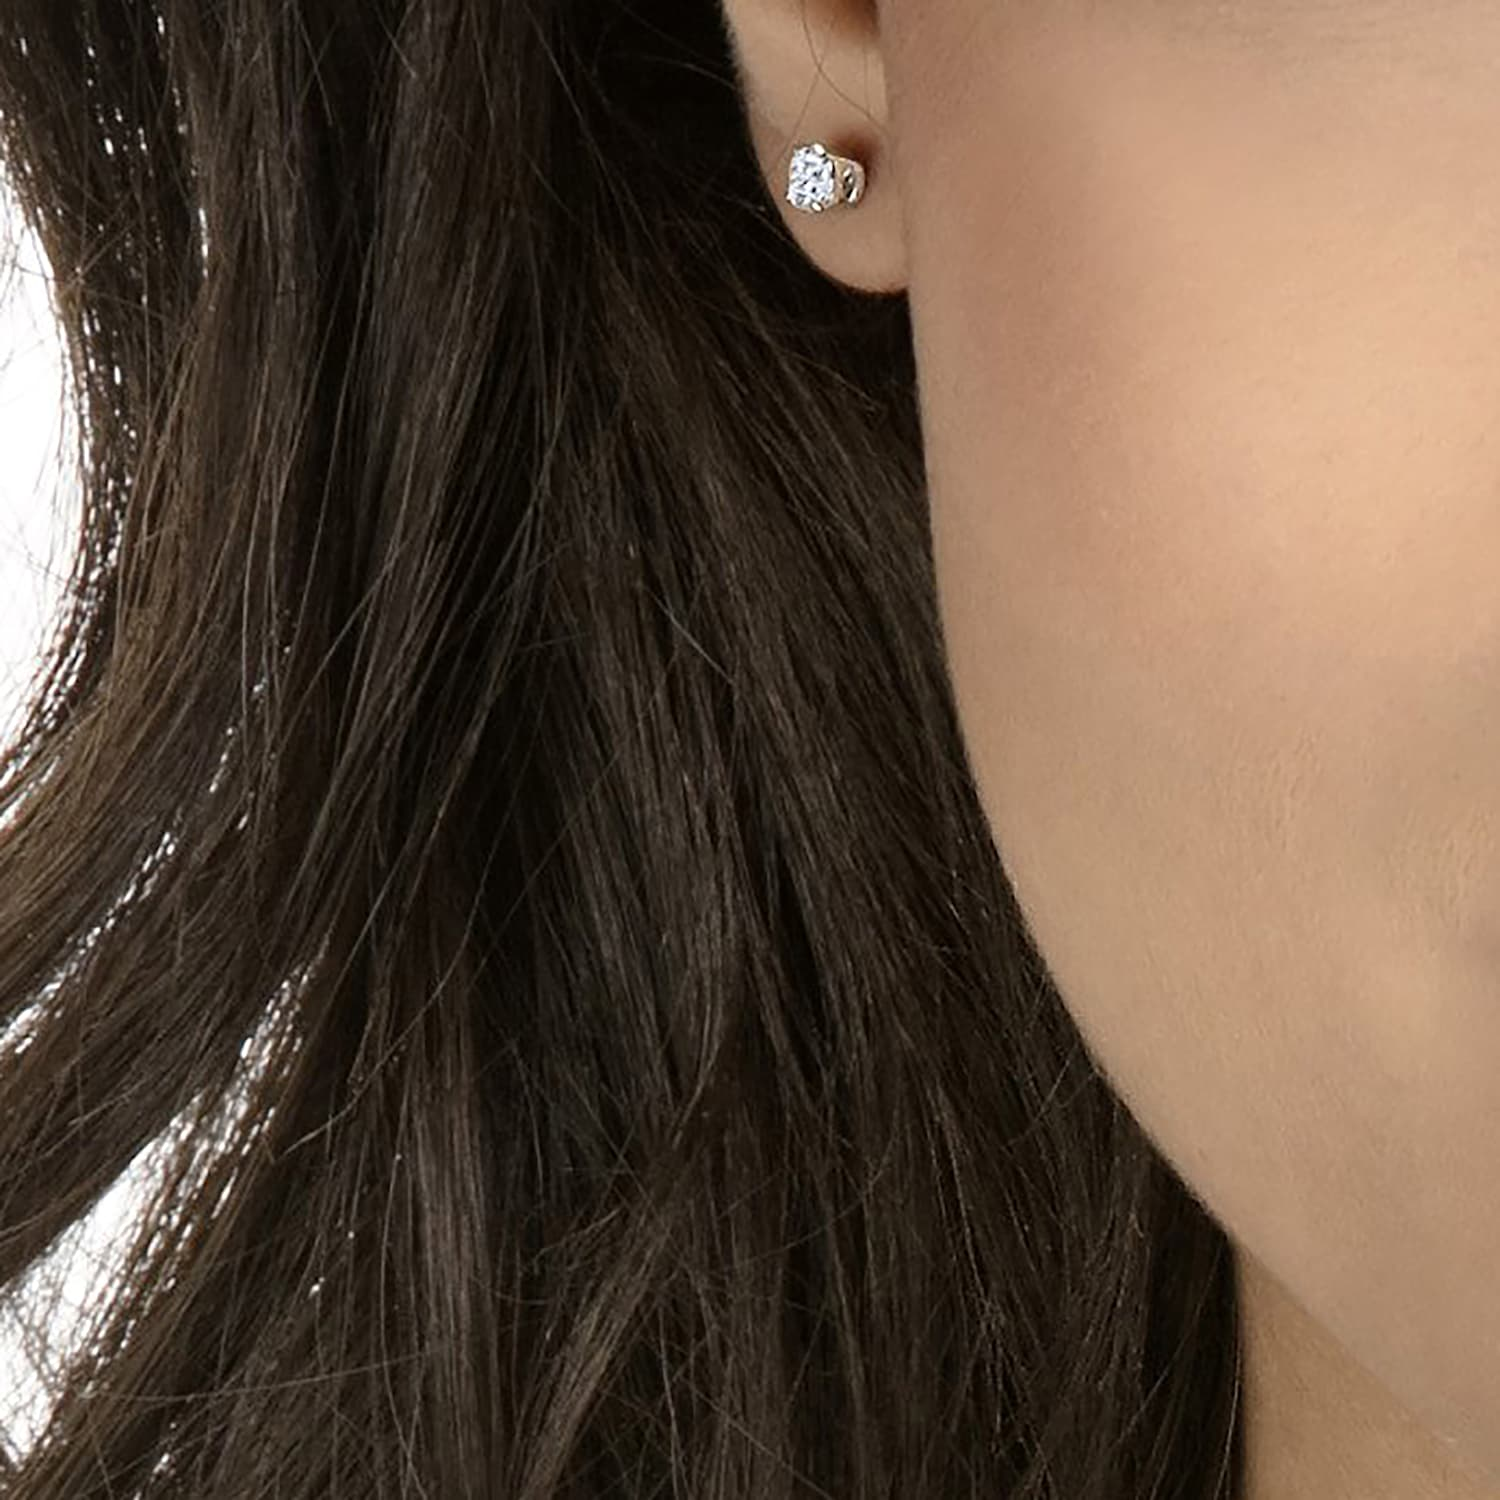 Details about  /Real 14kt and Rhodium Flip Flop Earrings